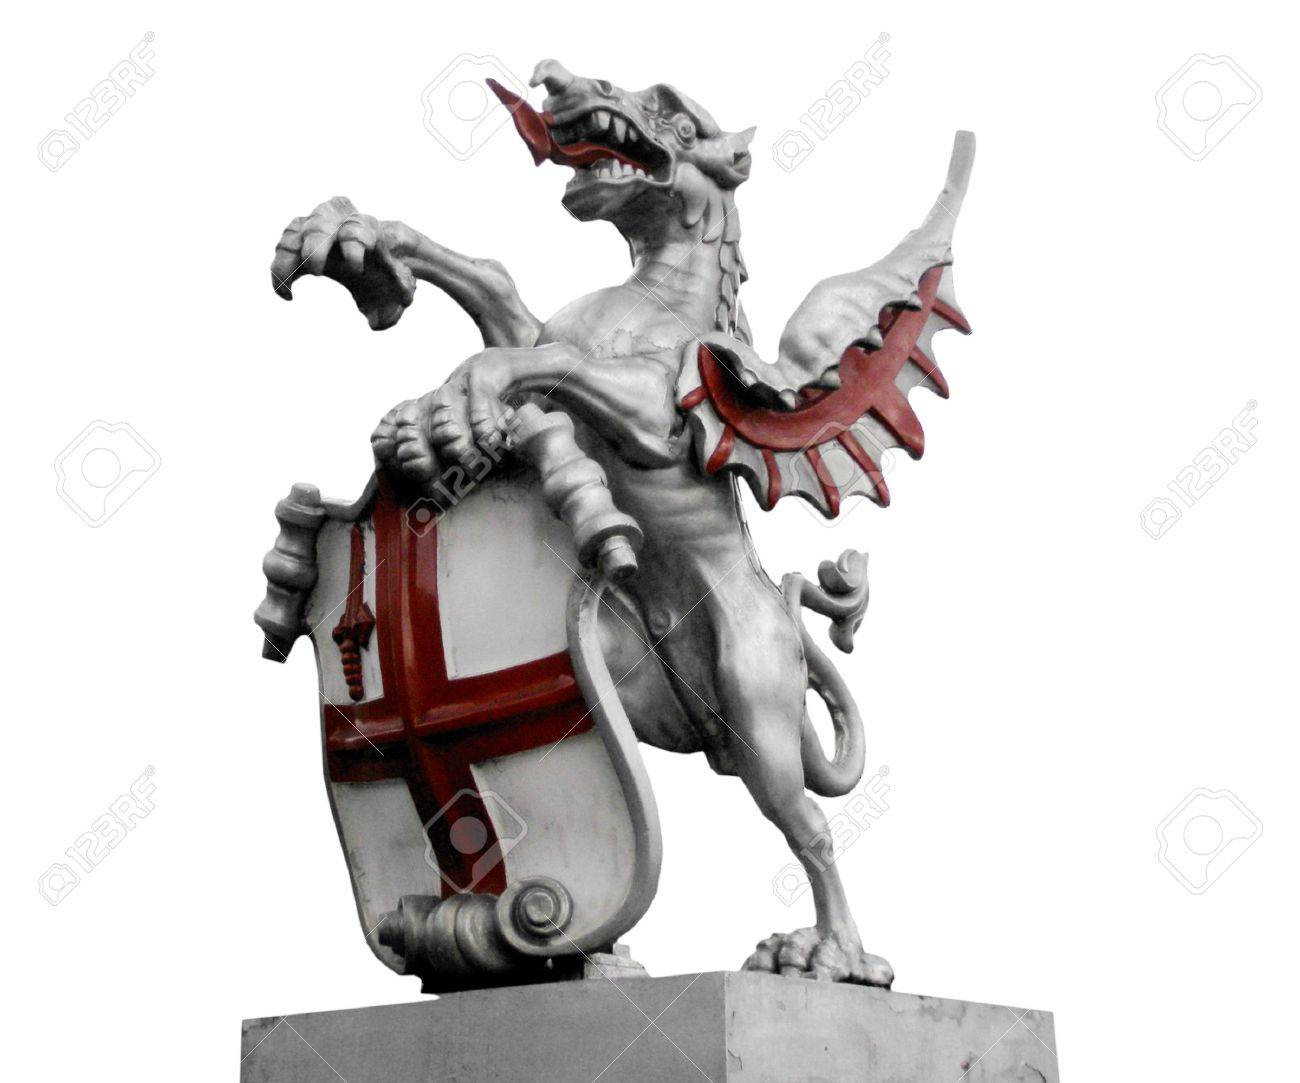 St george with the dragon symbol of england and london stock st george with the dragon symbol of england and london stock photo 6612997 biocorpaavc Image collections